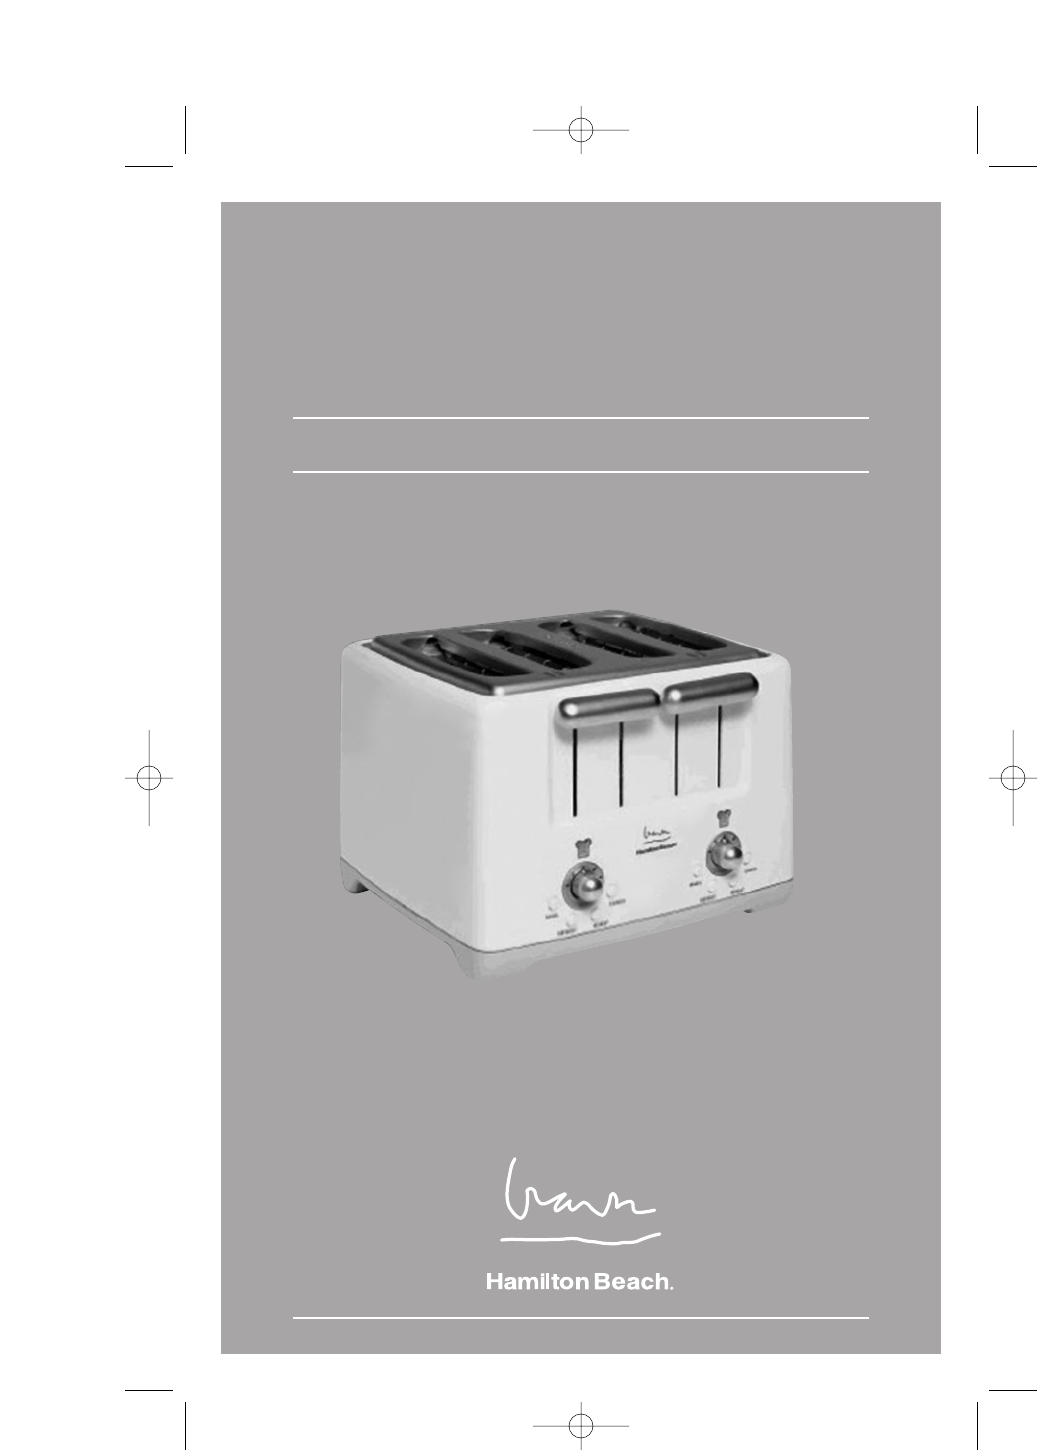 hamilton beach toaster 4 slice toaster user guide manualsonline com rh kitchen manualsonline com hamilton beach owners manual 50199 hamilton beach brewstation owners manual